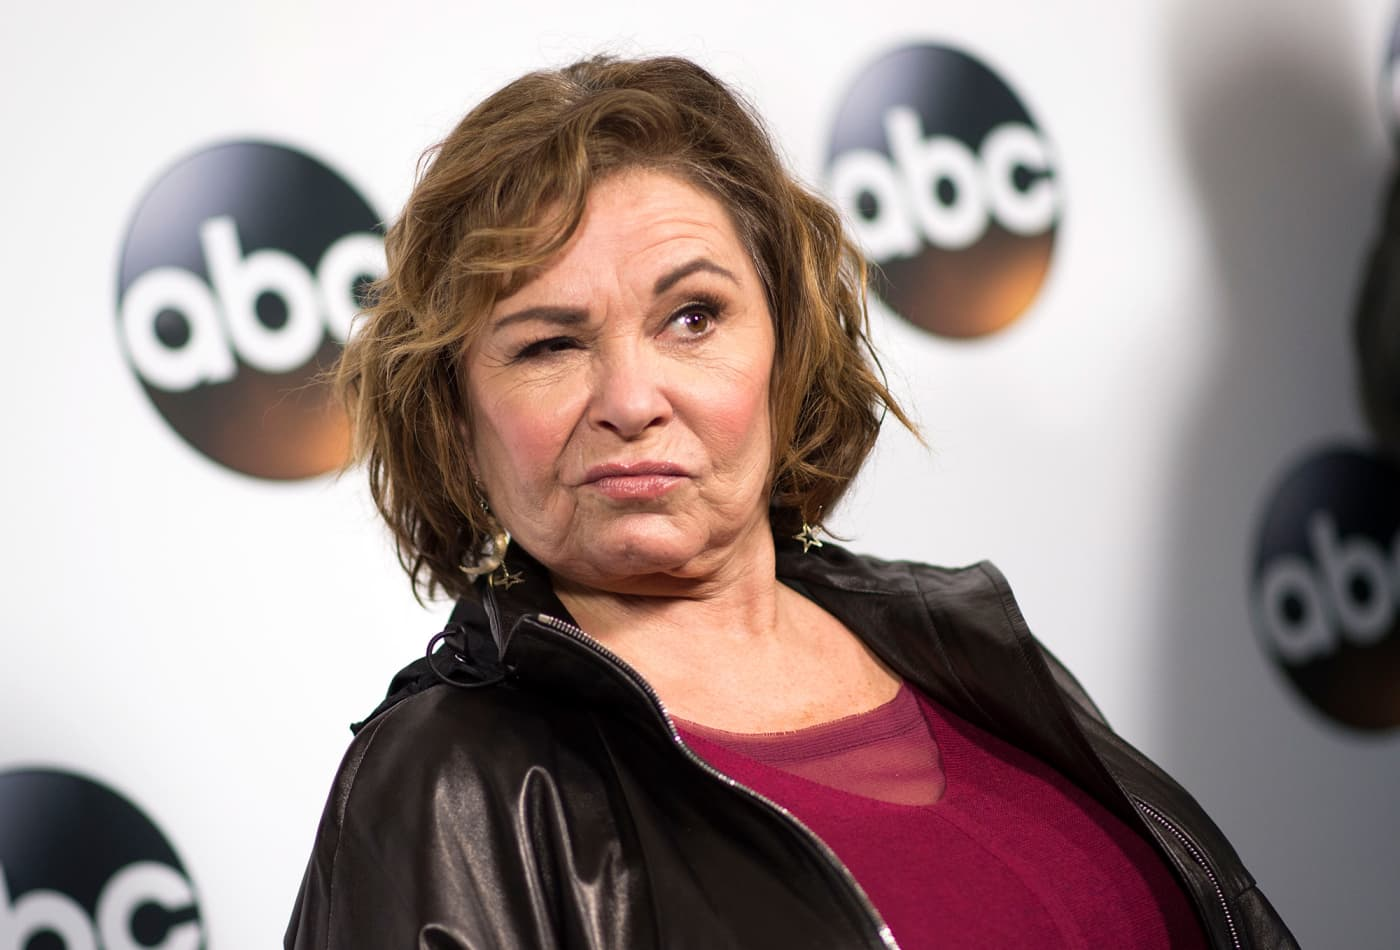 Roseanne Barr Show 2020.Roseanne Barr Is Unhappy About Her Character S Death In The